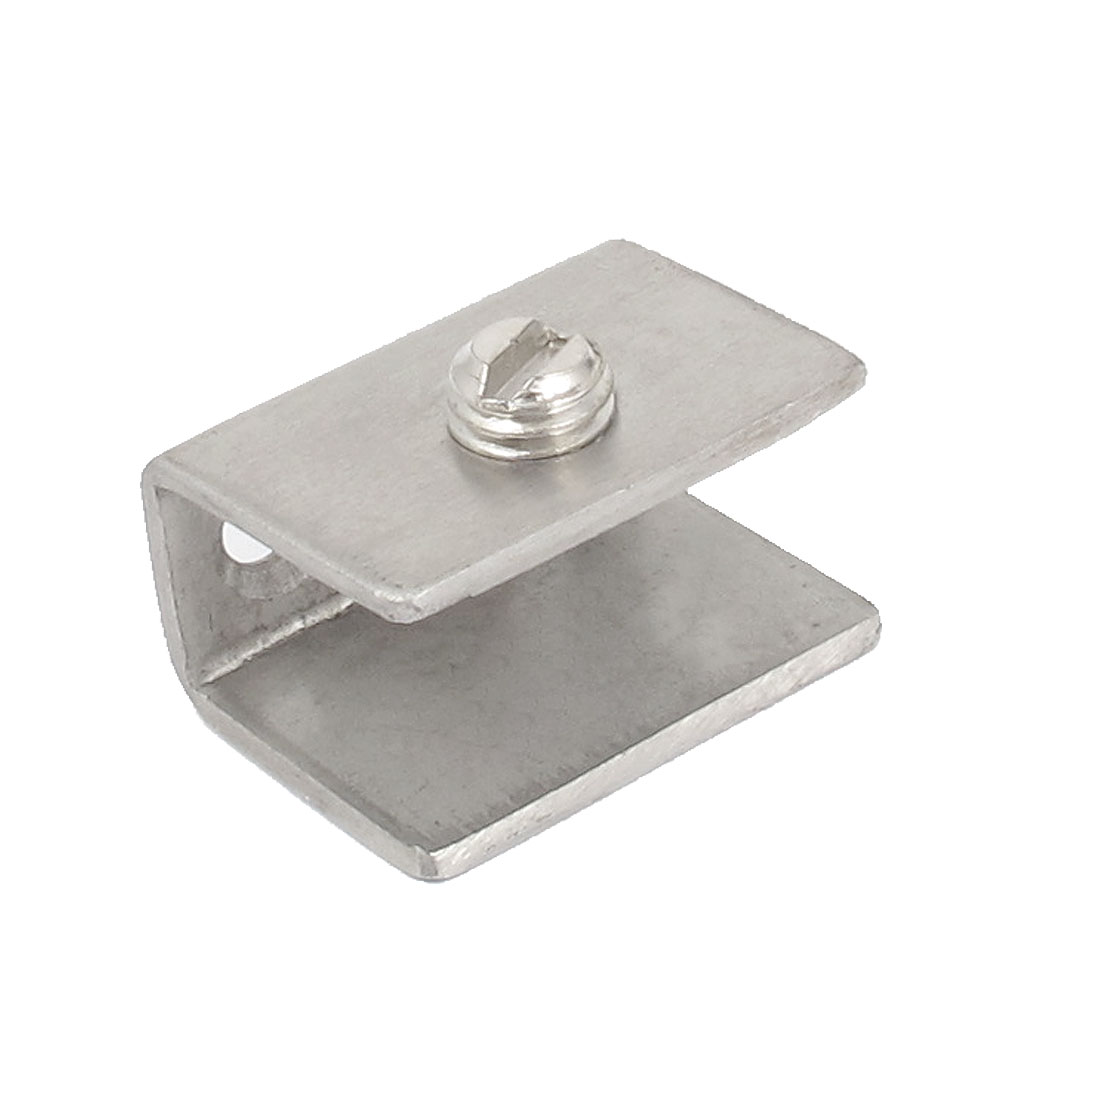 Stainless Steel 10mm Thick Glass Shelf Clip Clamp Support Bracket Holder